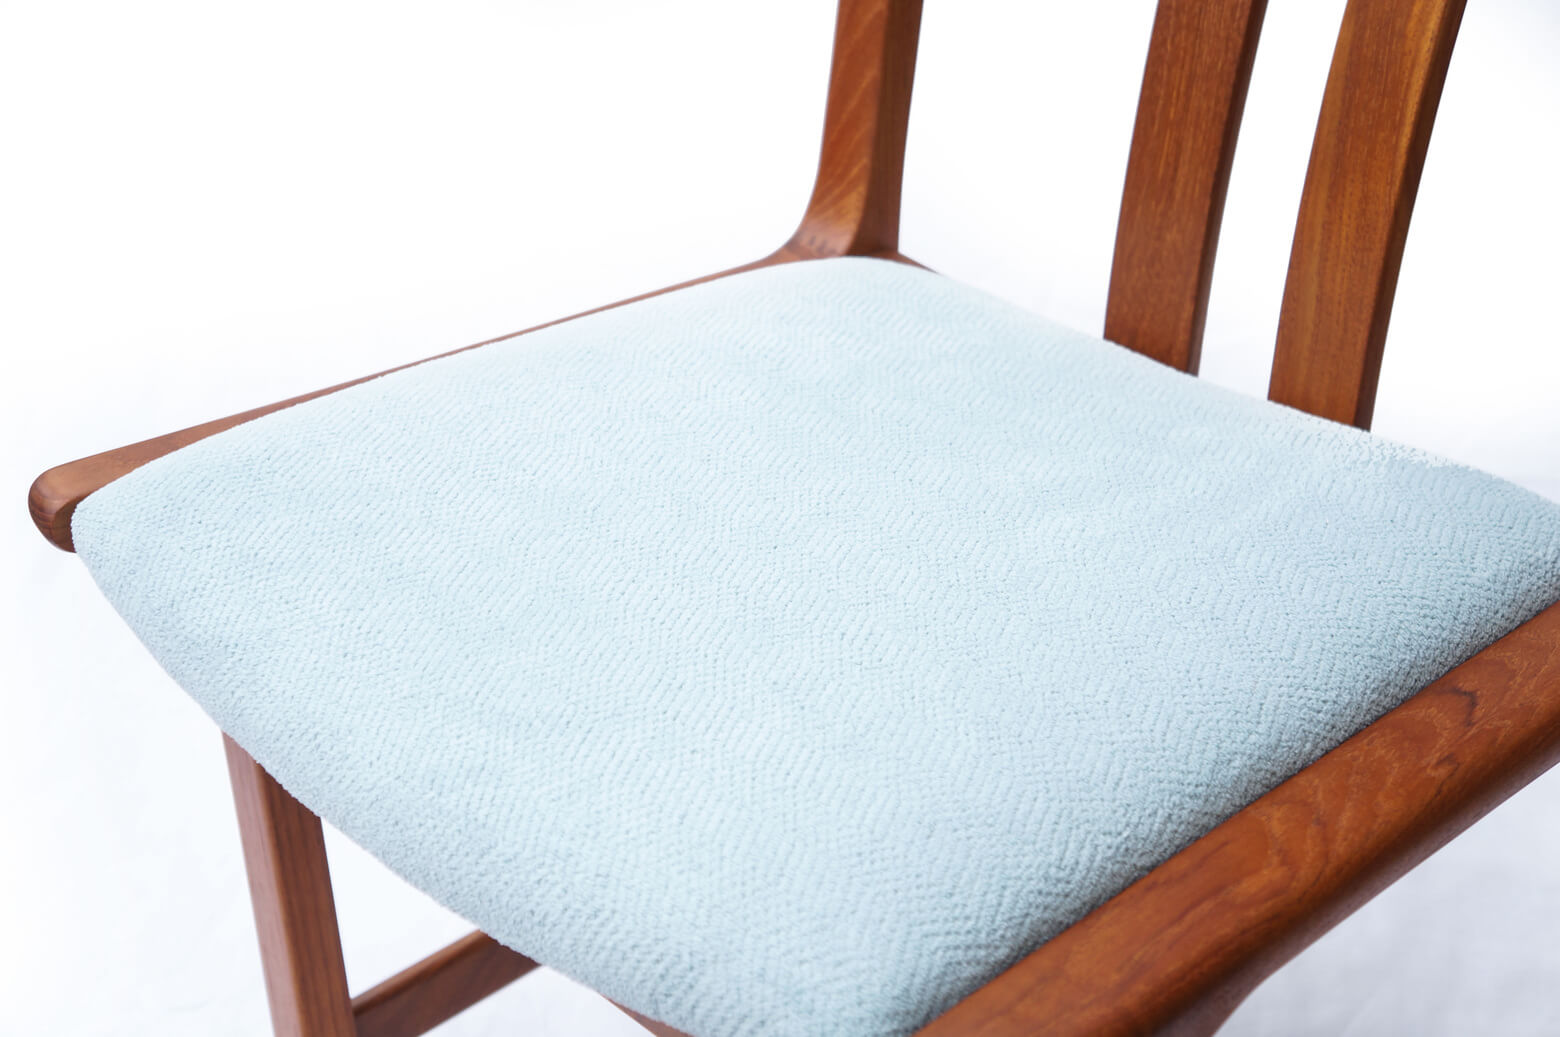 Danish Vintage L.Olsen&Son Dining Chair Re-Covering Light Blue/デンマーク ヴィンテージ L.オルセン&サン ダイニング チェア 北欧家具 ライトブルー